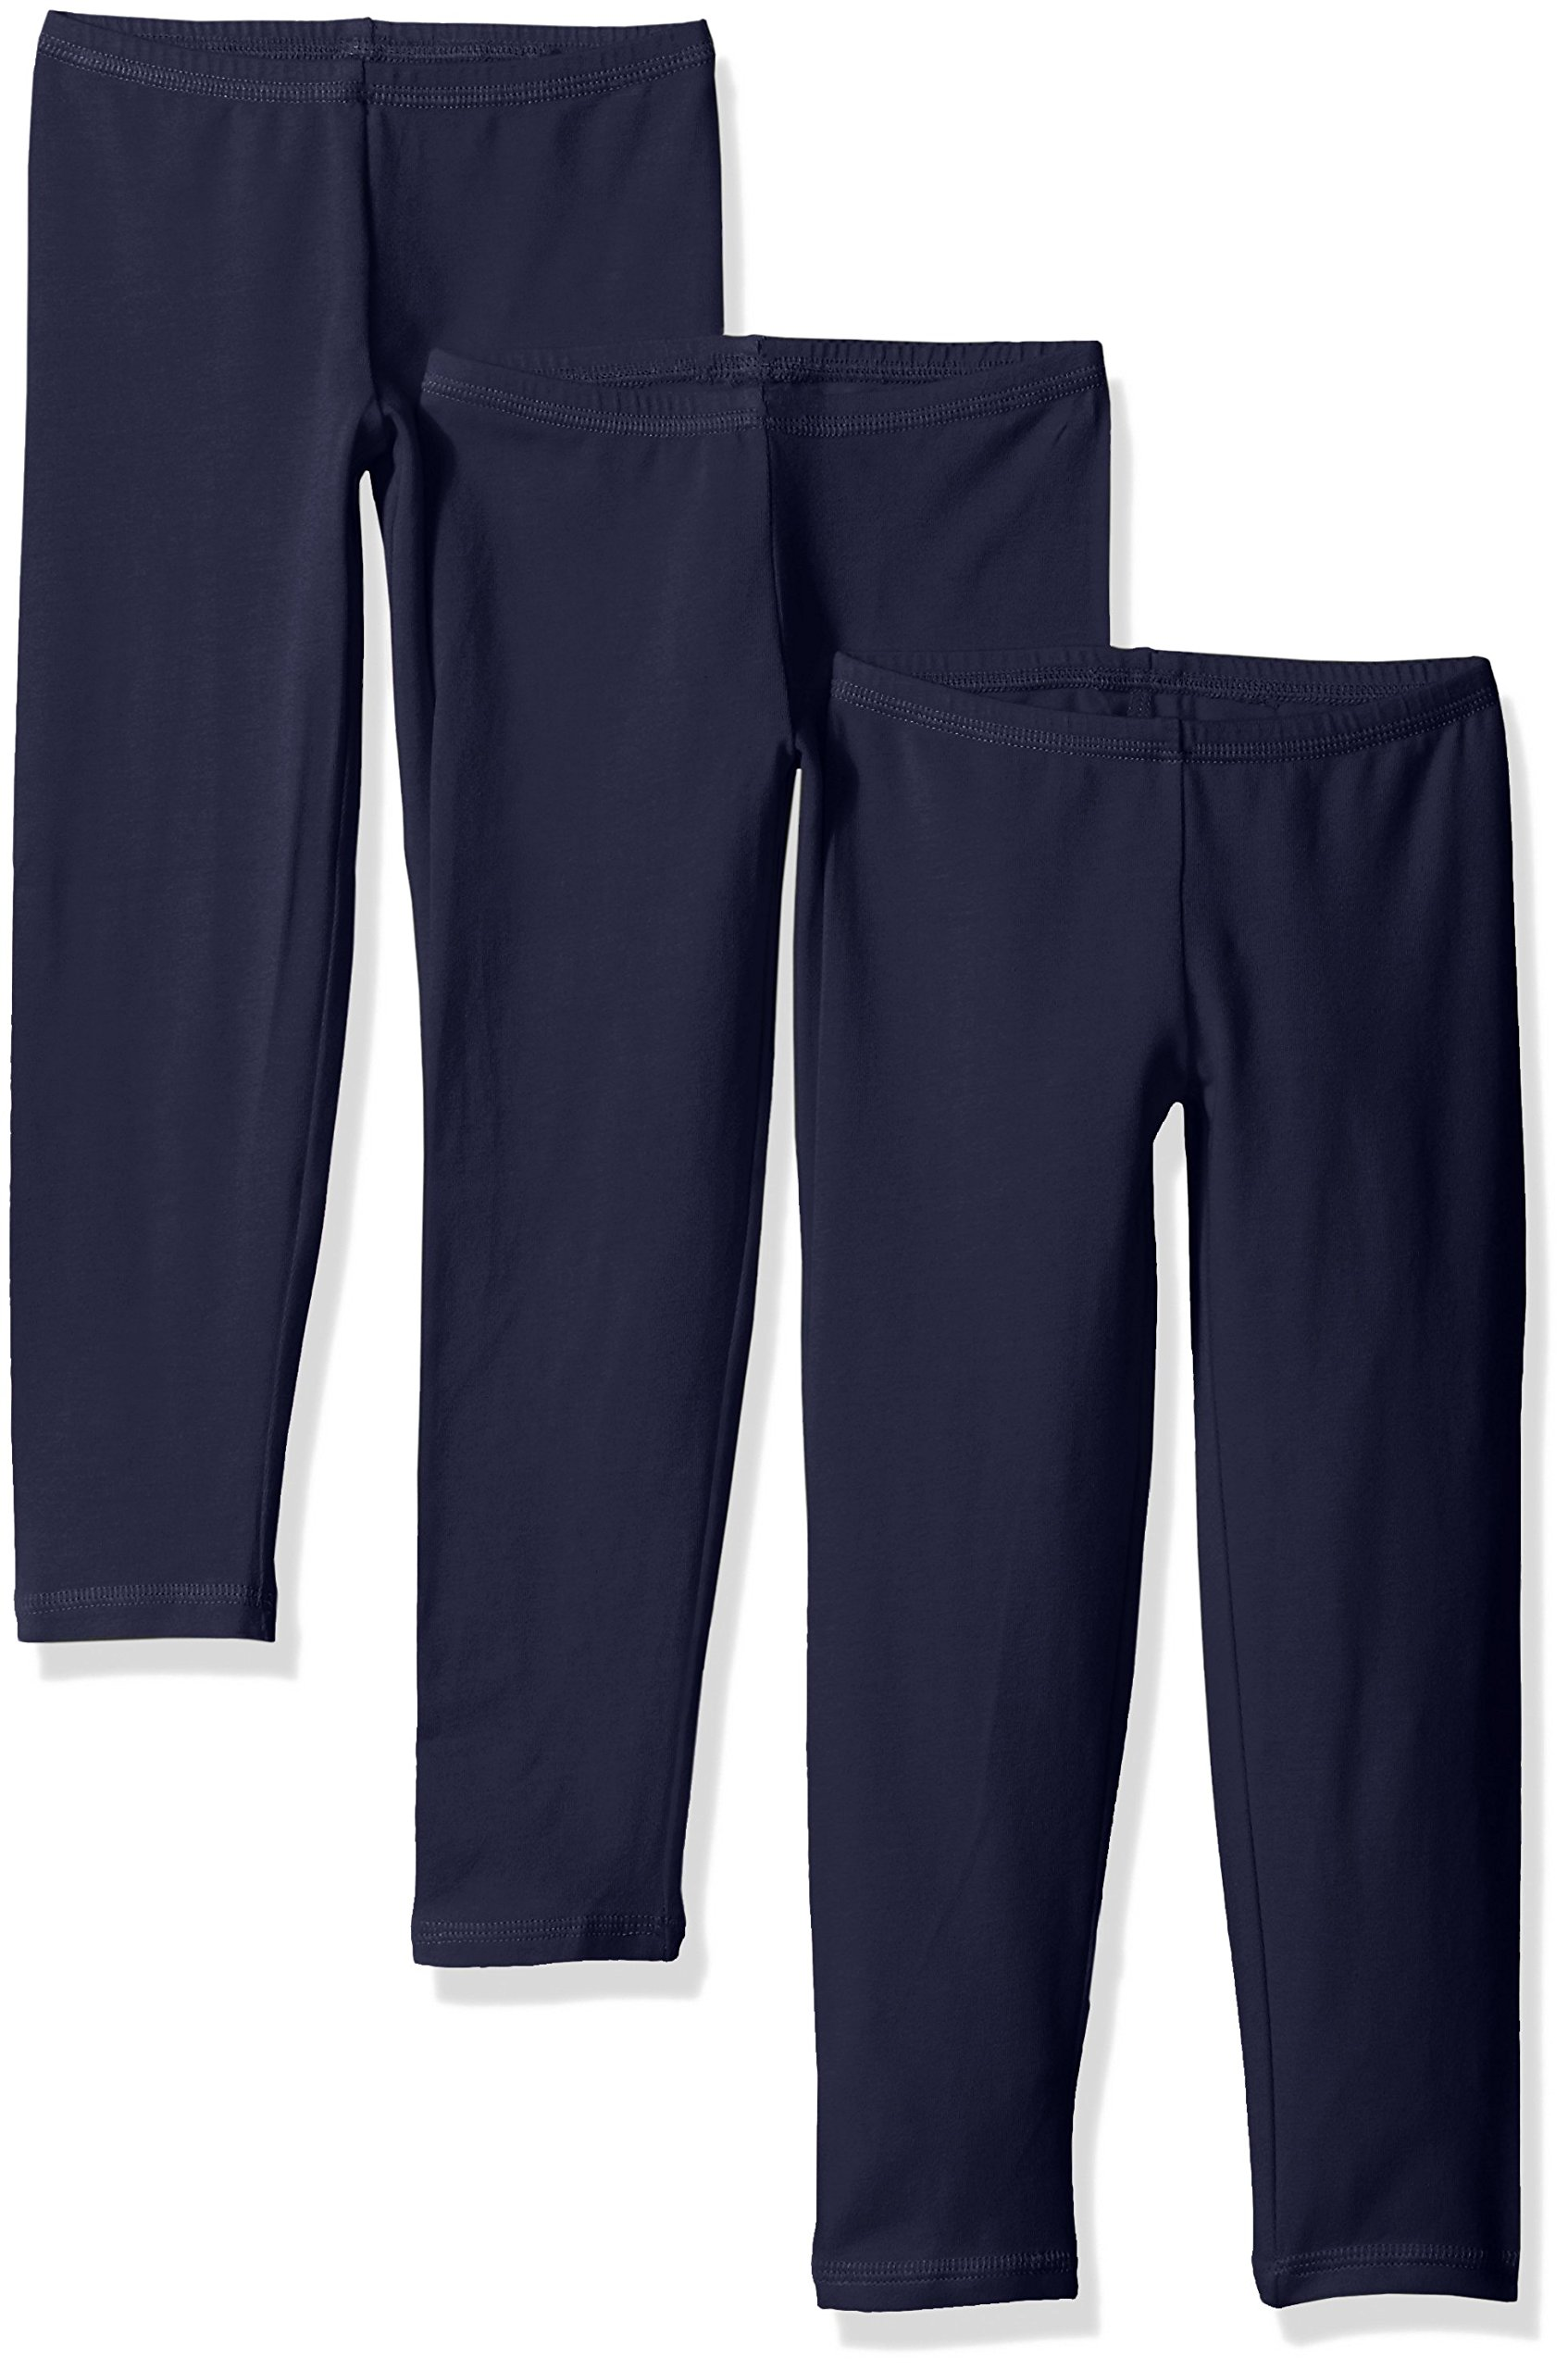 Hanes Little Girls' Leggings (Pack of 3), Navy, Small